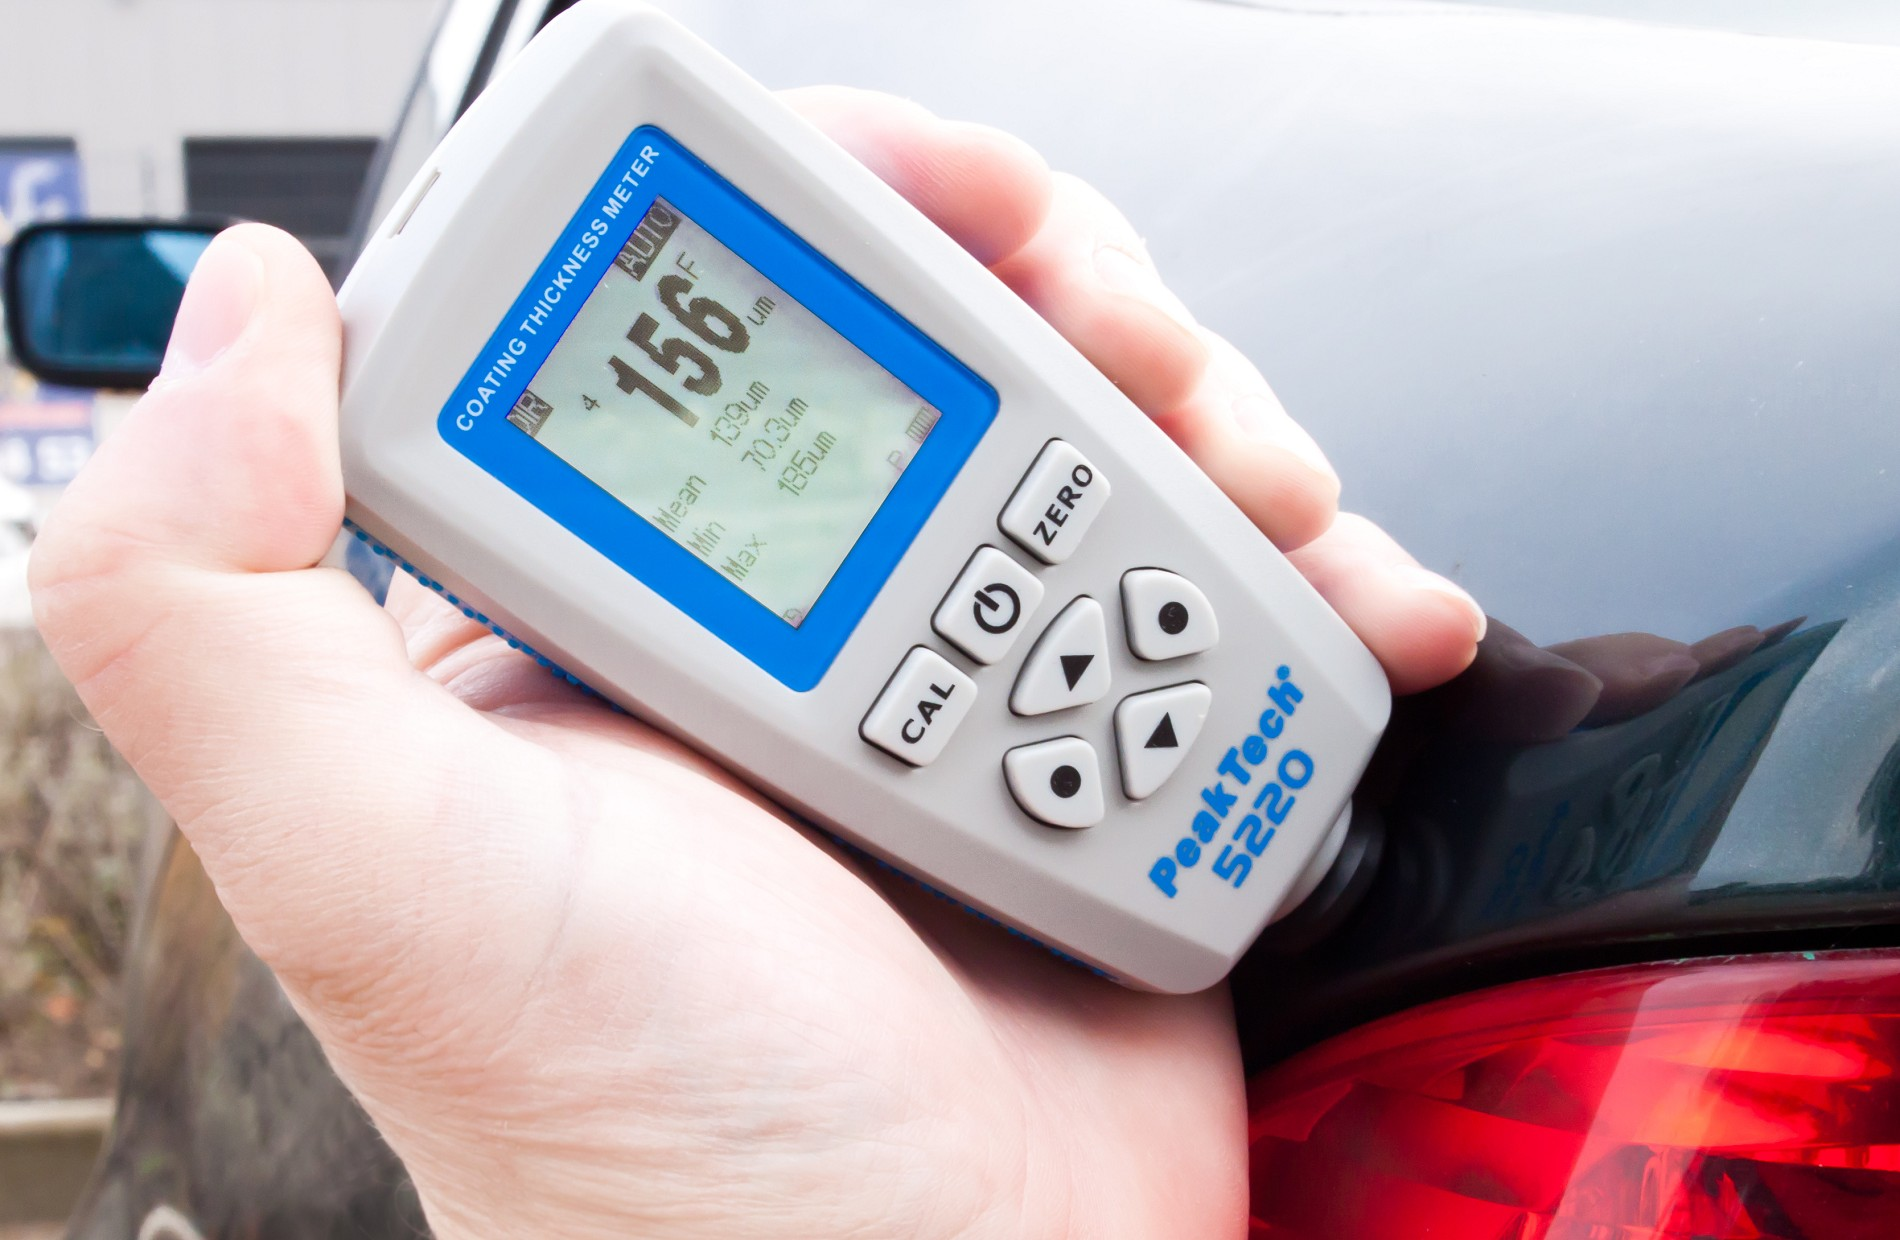 «PeakTech® P 5220» Coating and Material Thickness Meter